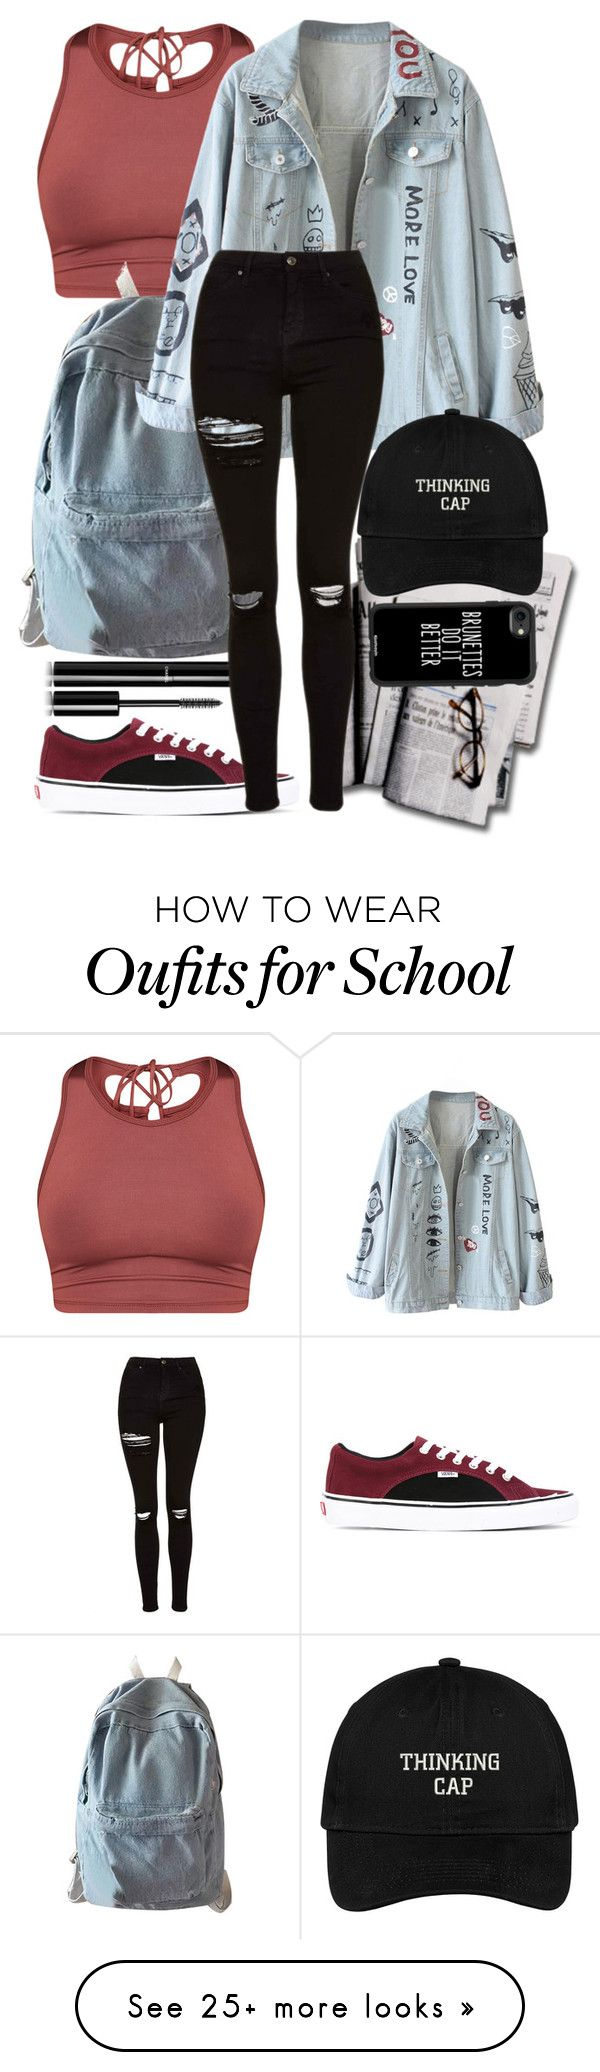 """Journalism Student"" by catherinetabor on Polyvore featuring Chanel, Vans, WithChic, Topshop, Casetify and vintage (Fitness Clothes Outfits)"